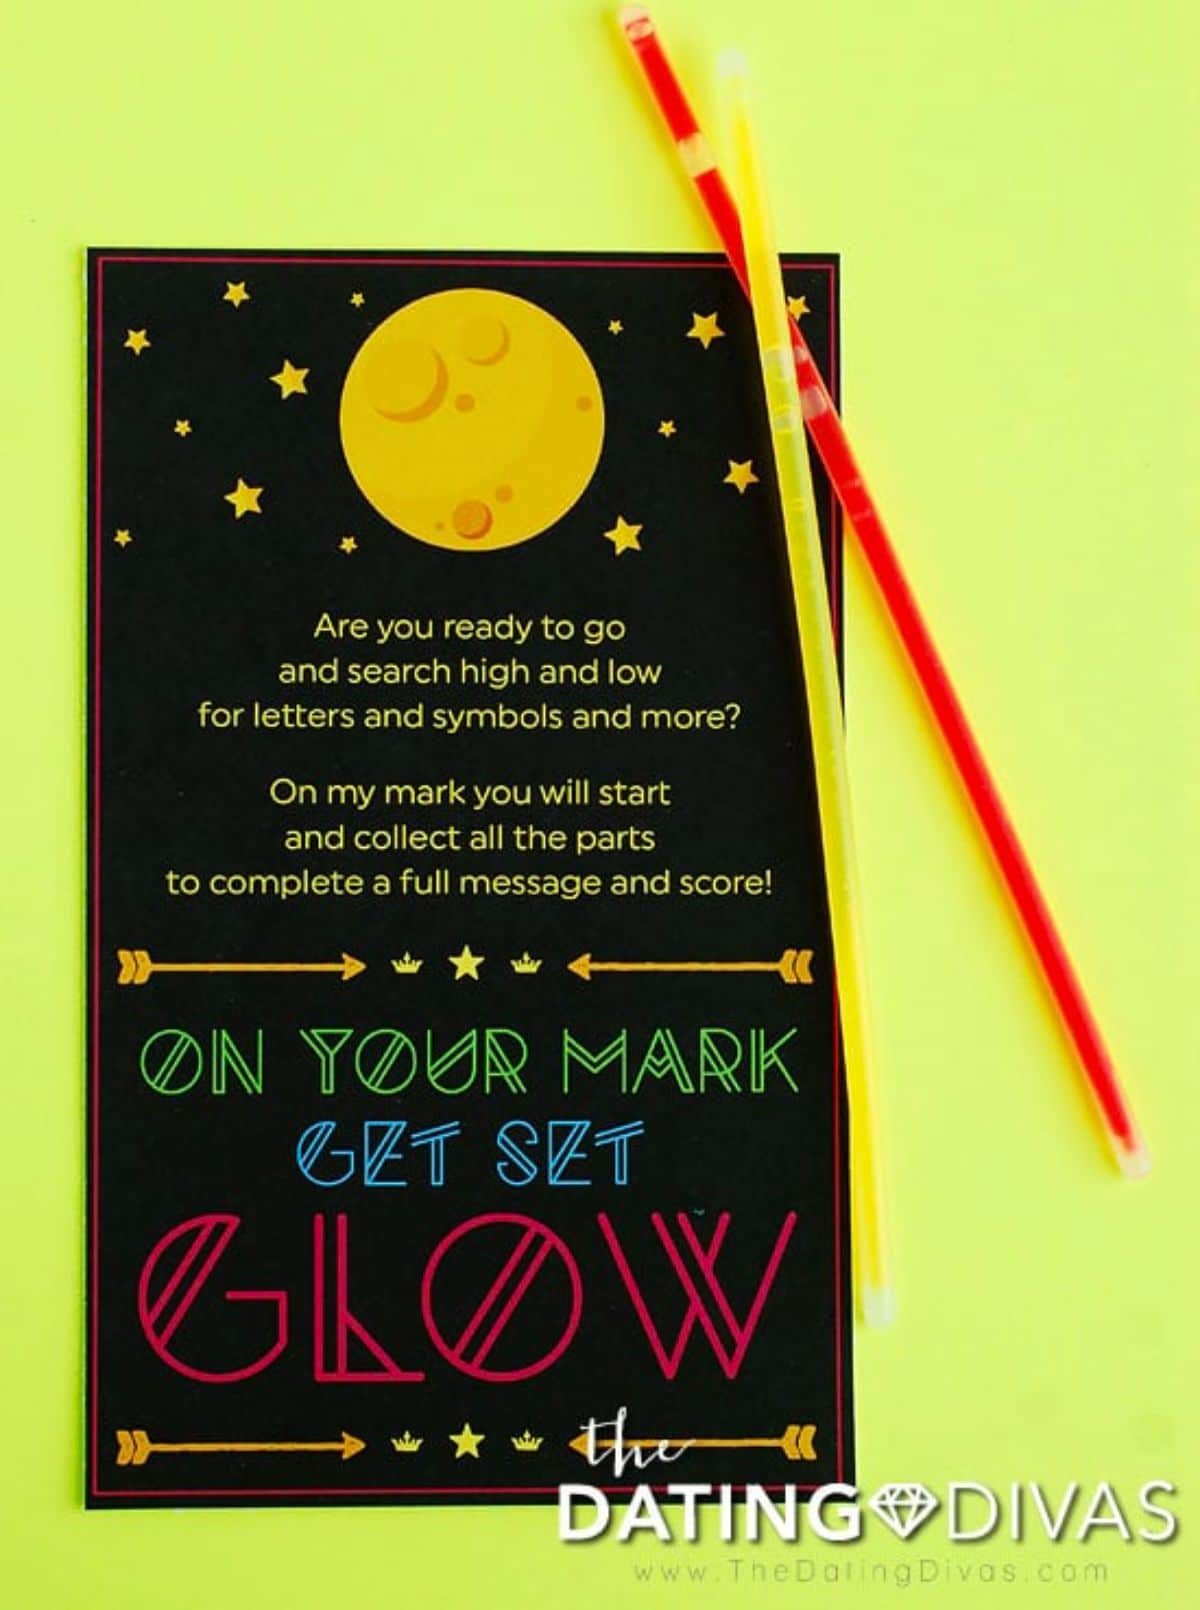 on a yellow background is a black piece of paper with a moon at the top. 2 glow sticks are on the right hand side